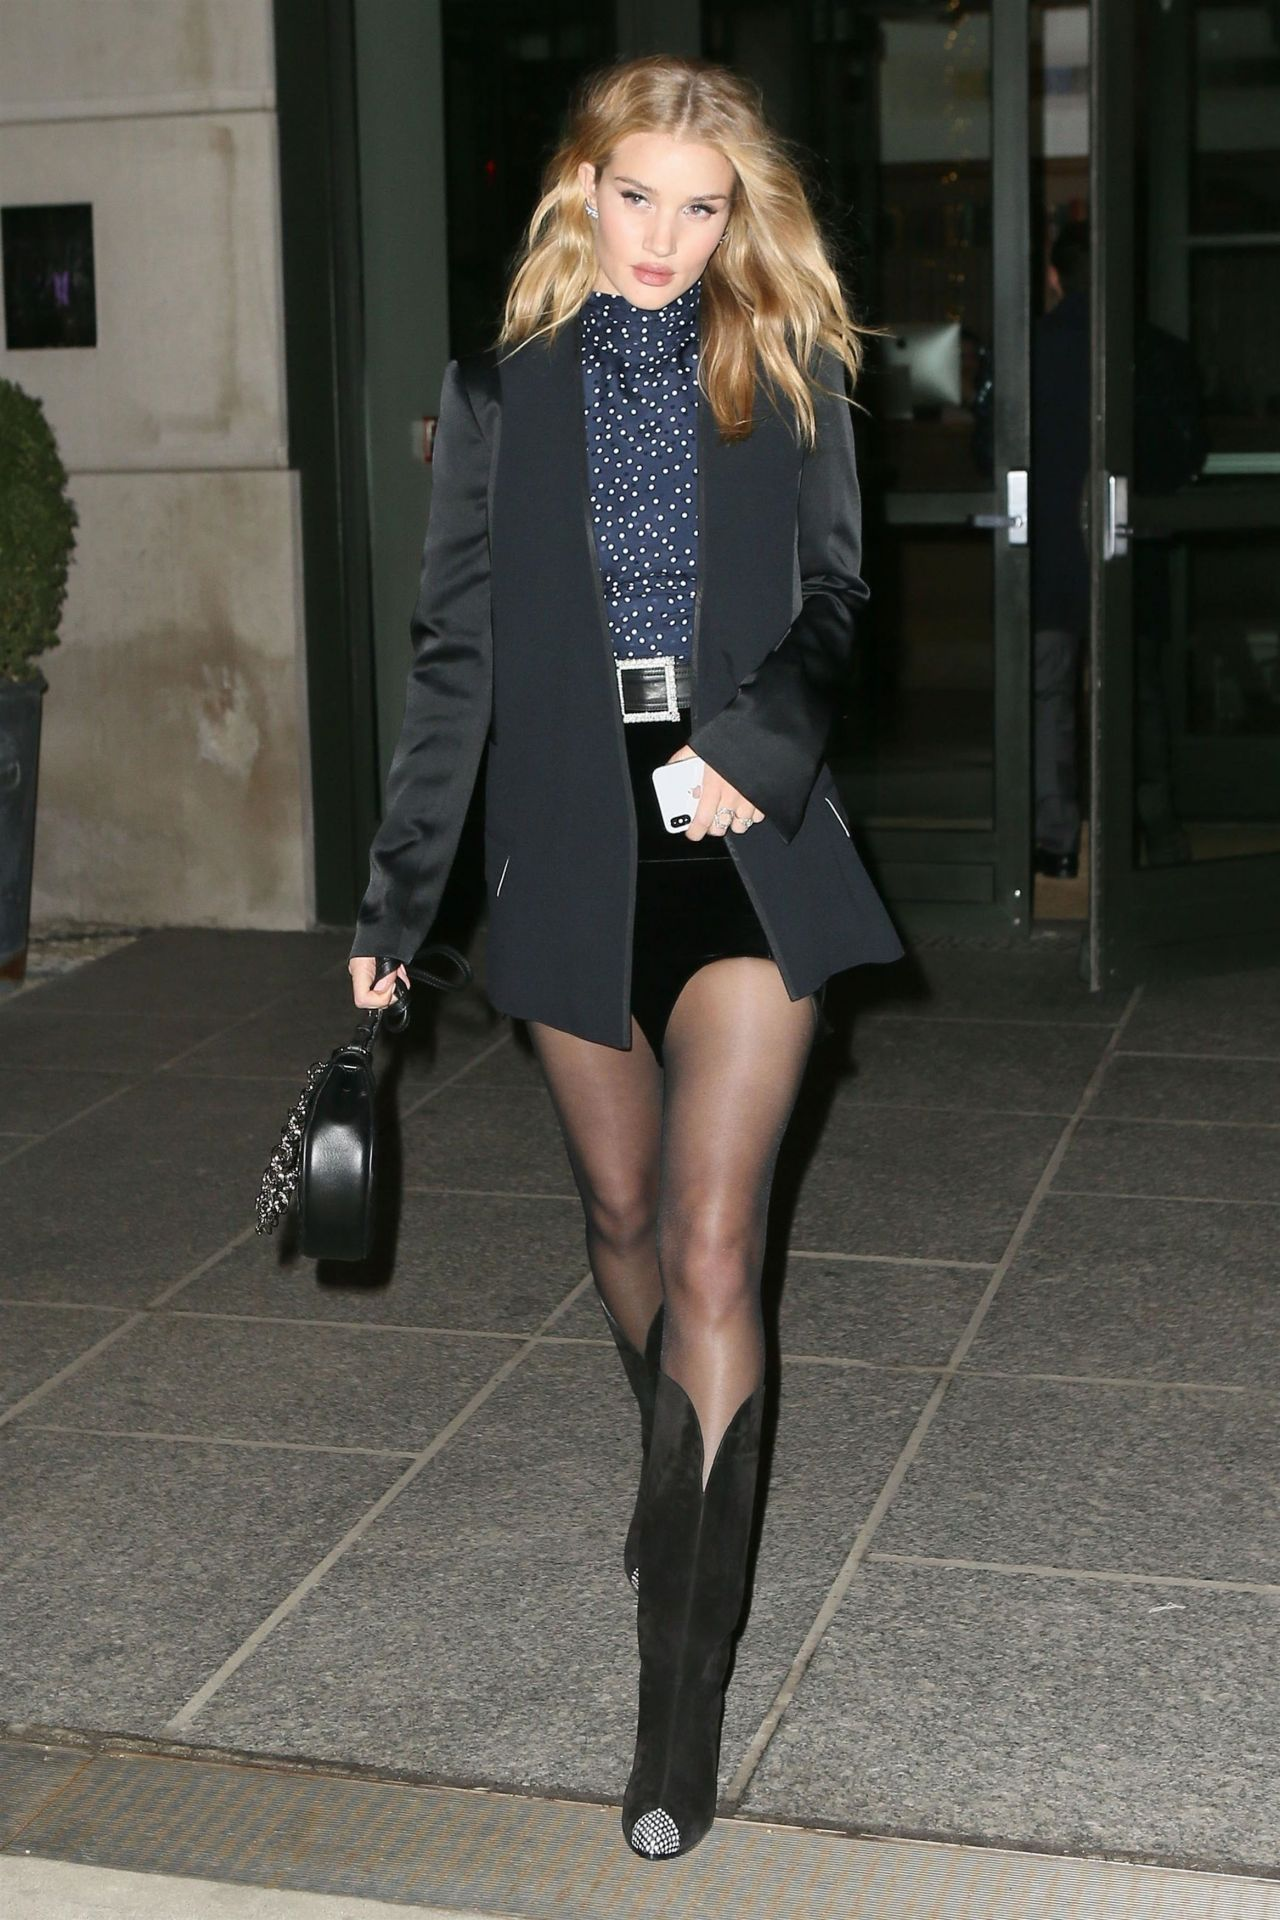 This Is What Rosie Huntington-Whiteley Wears on a Date images